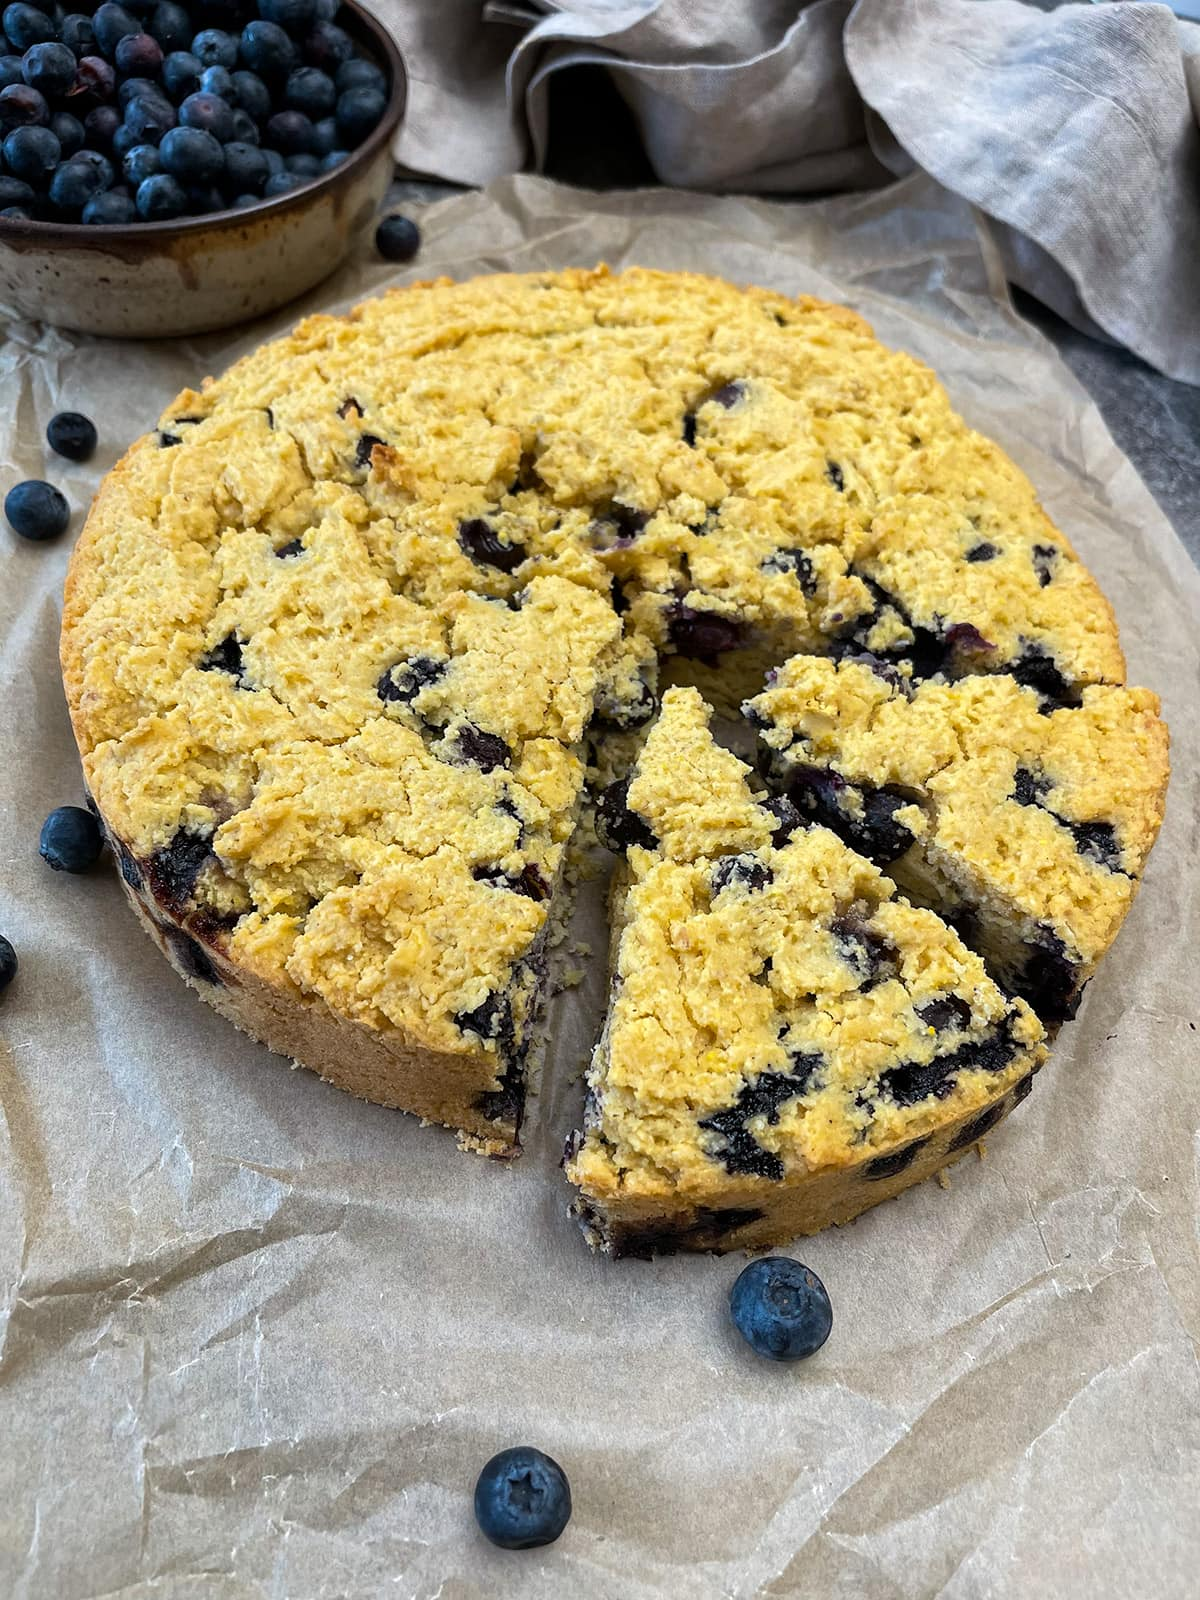 cornbread with blueberries on a beige parchment paper